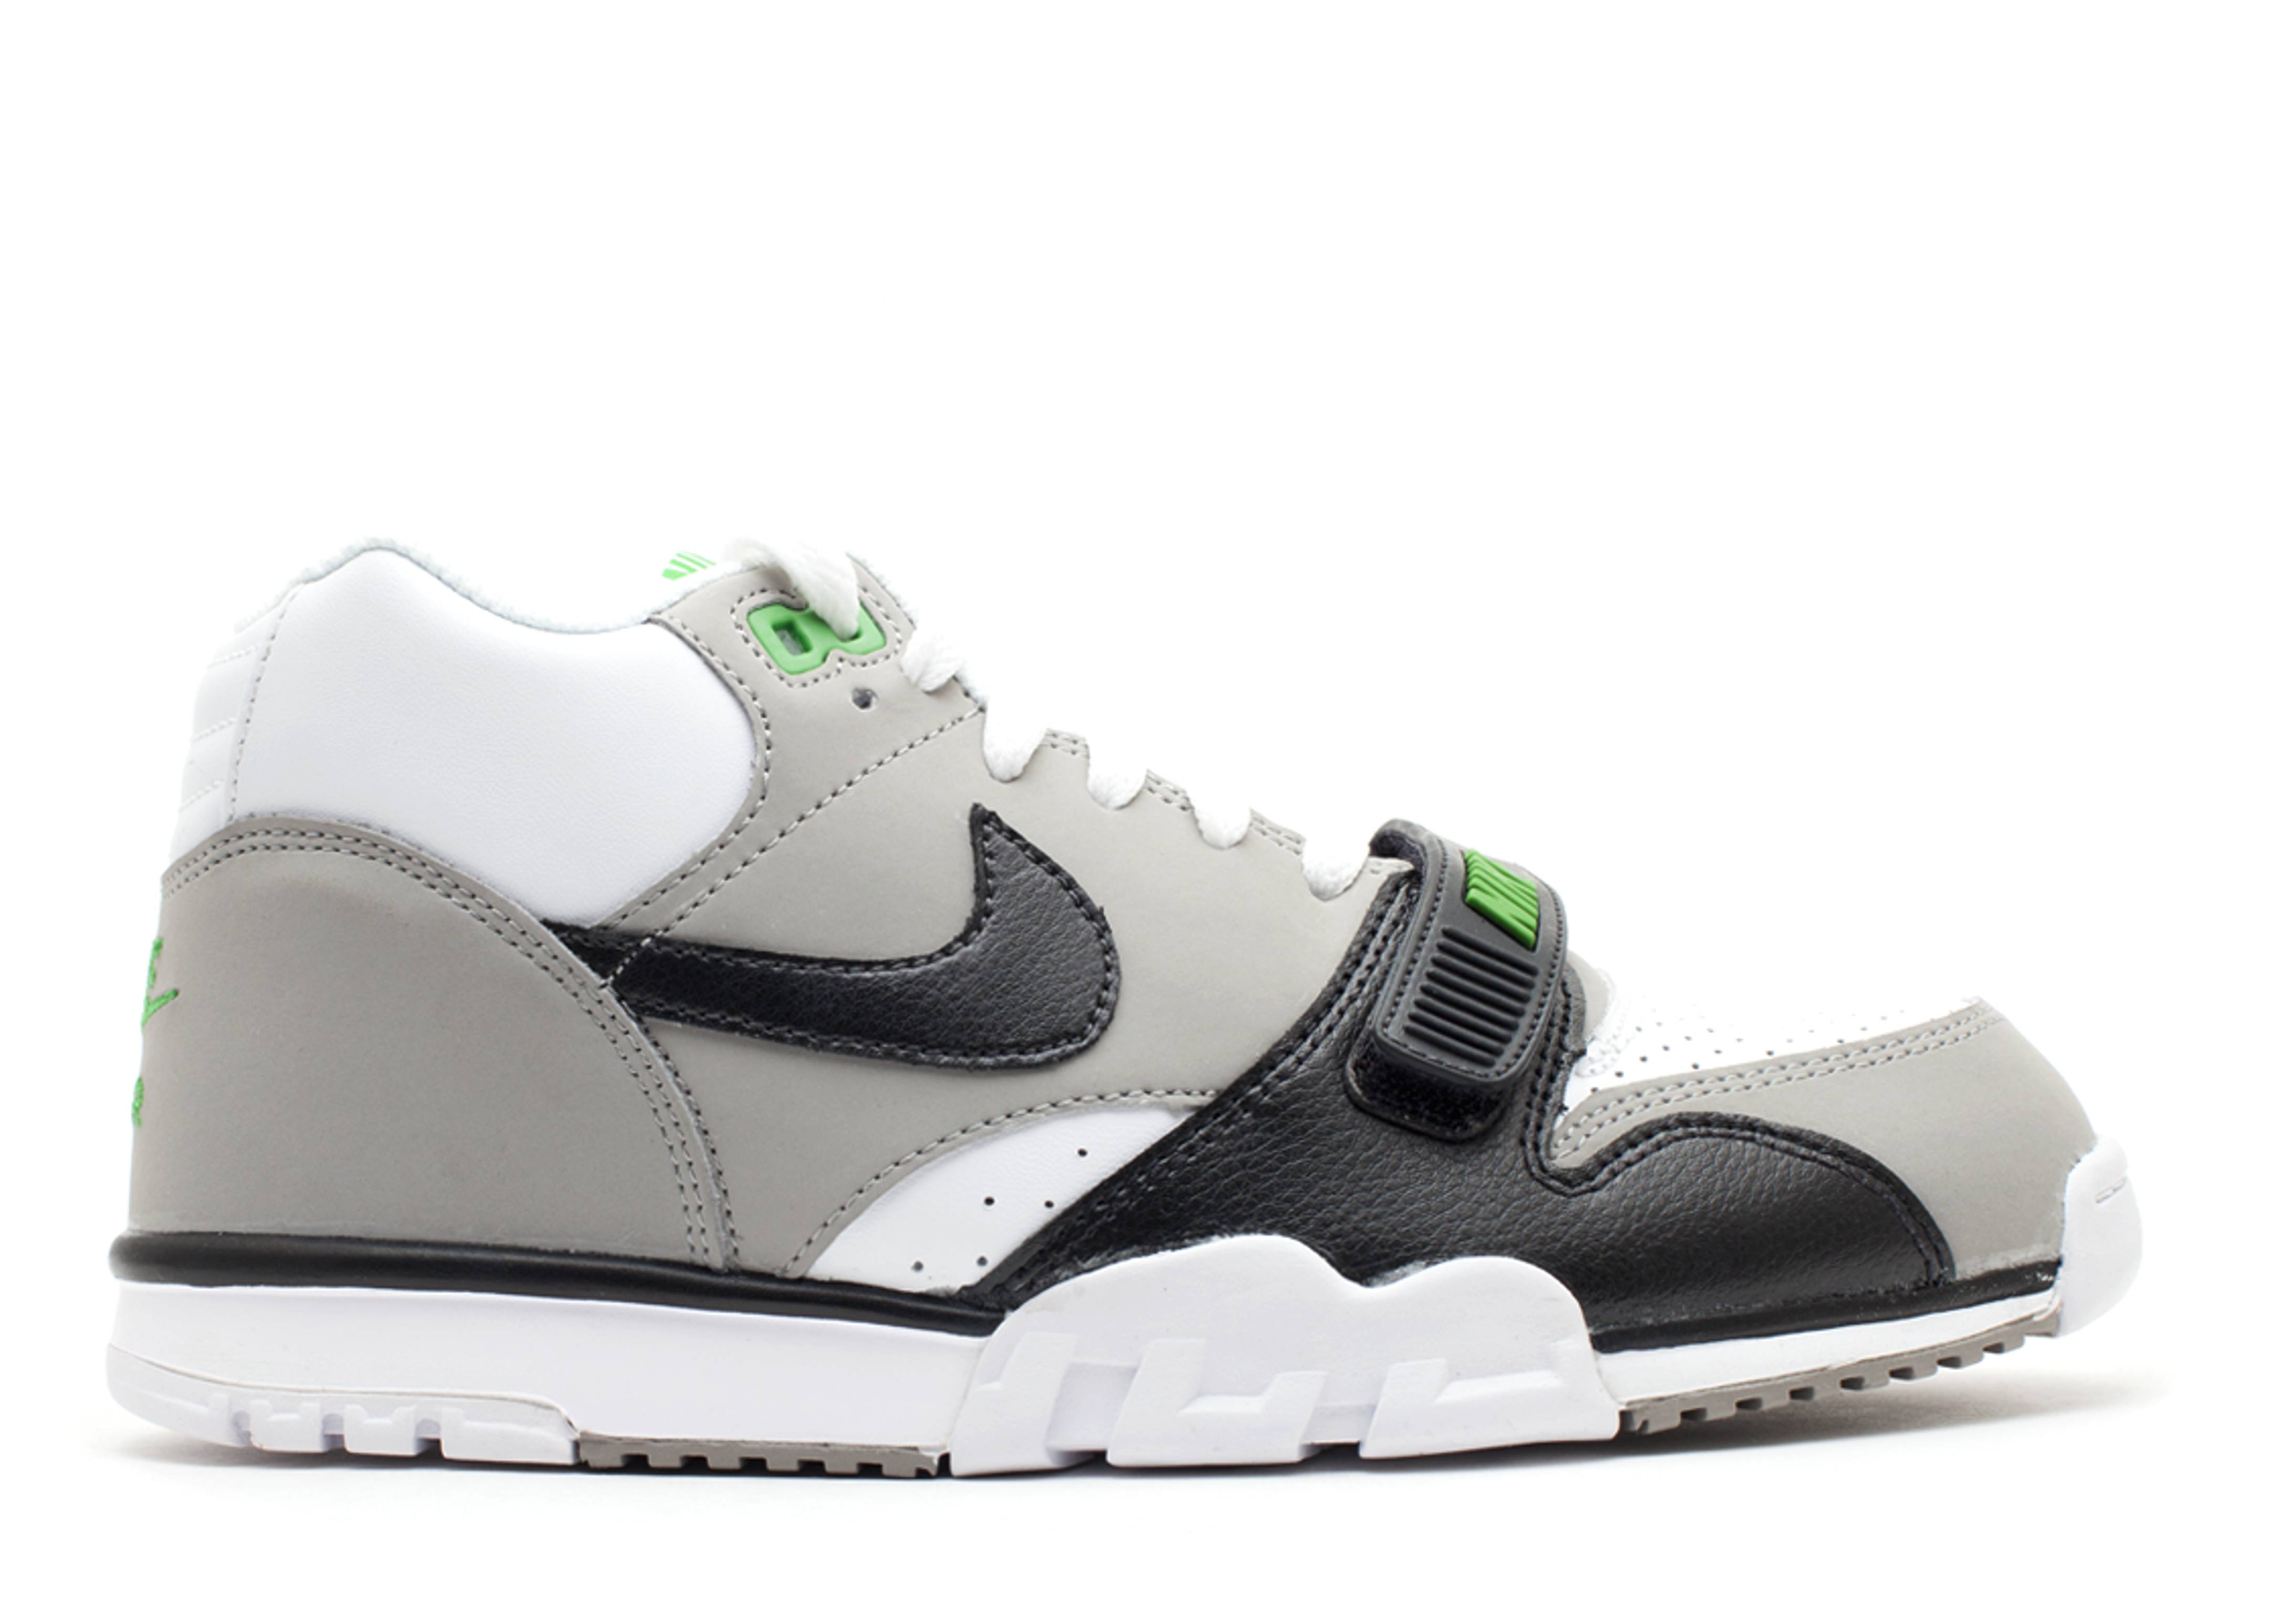 separation shoes a1db3 64ee2 the nike air trainer 1 mid premium chlorophyll gets a refill